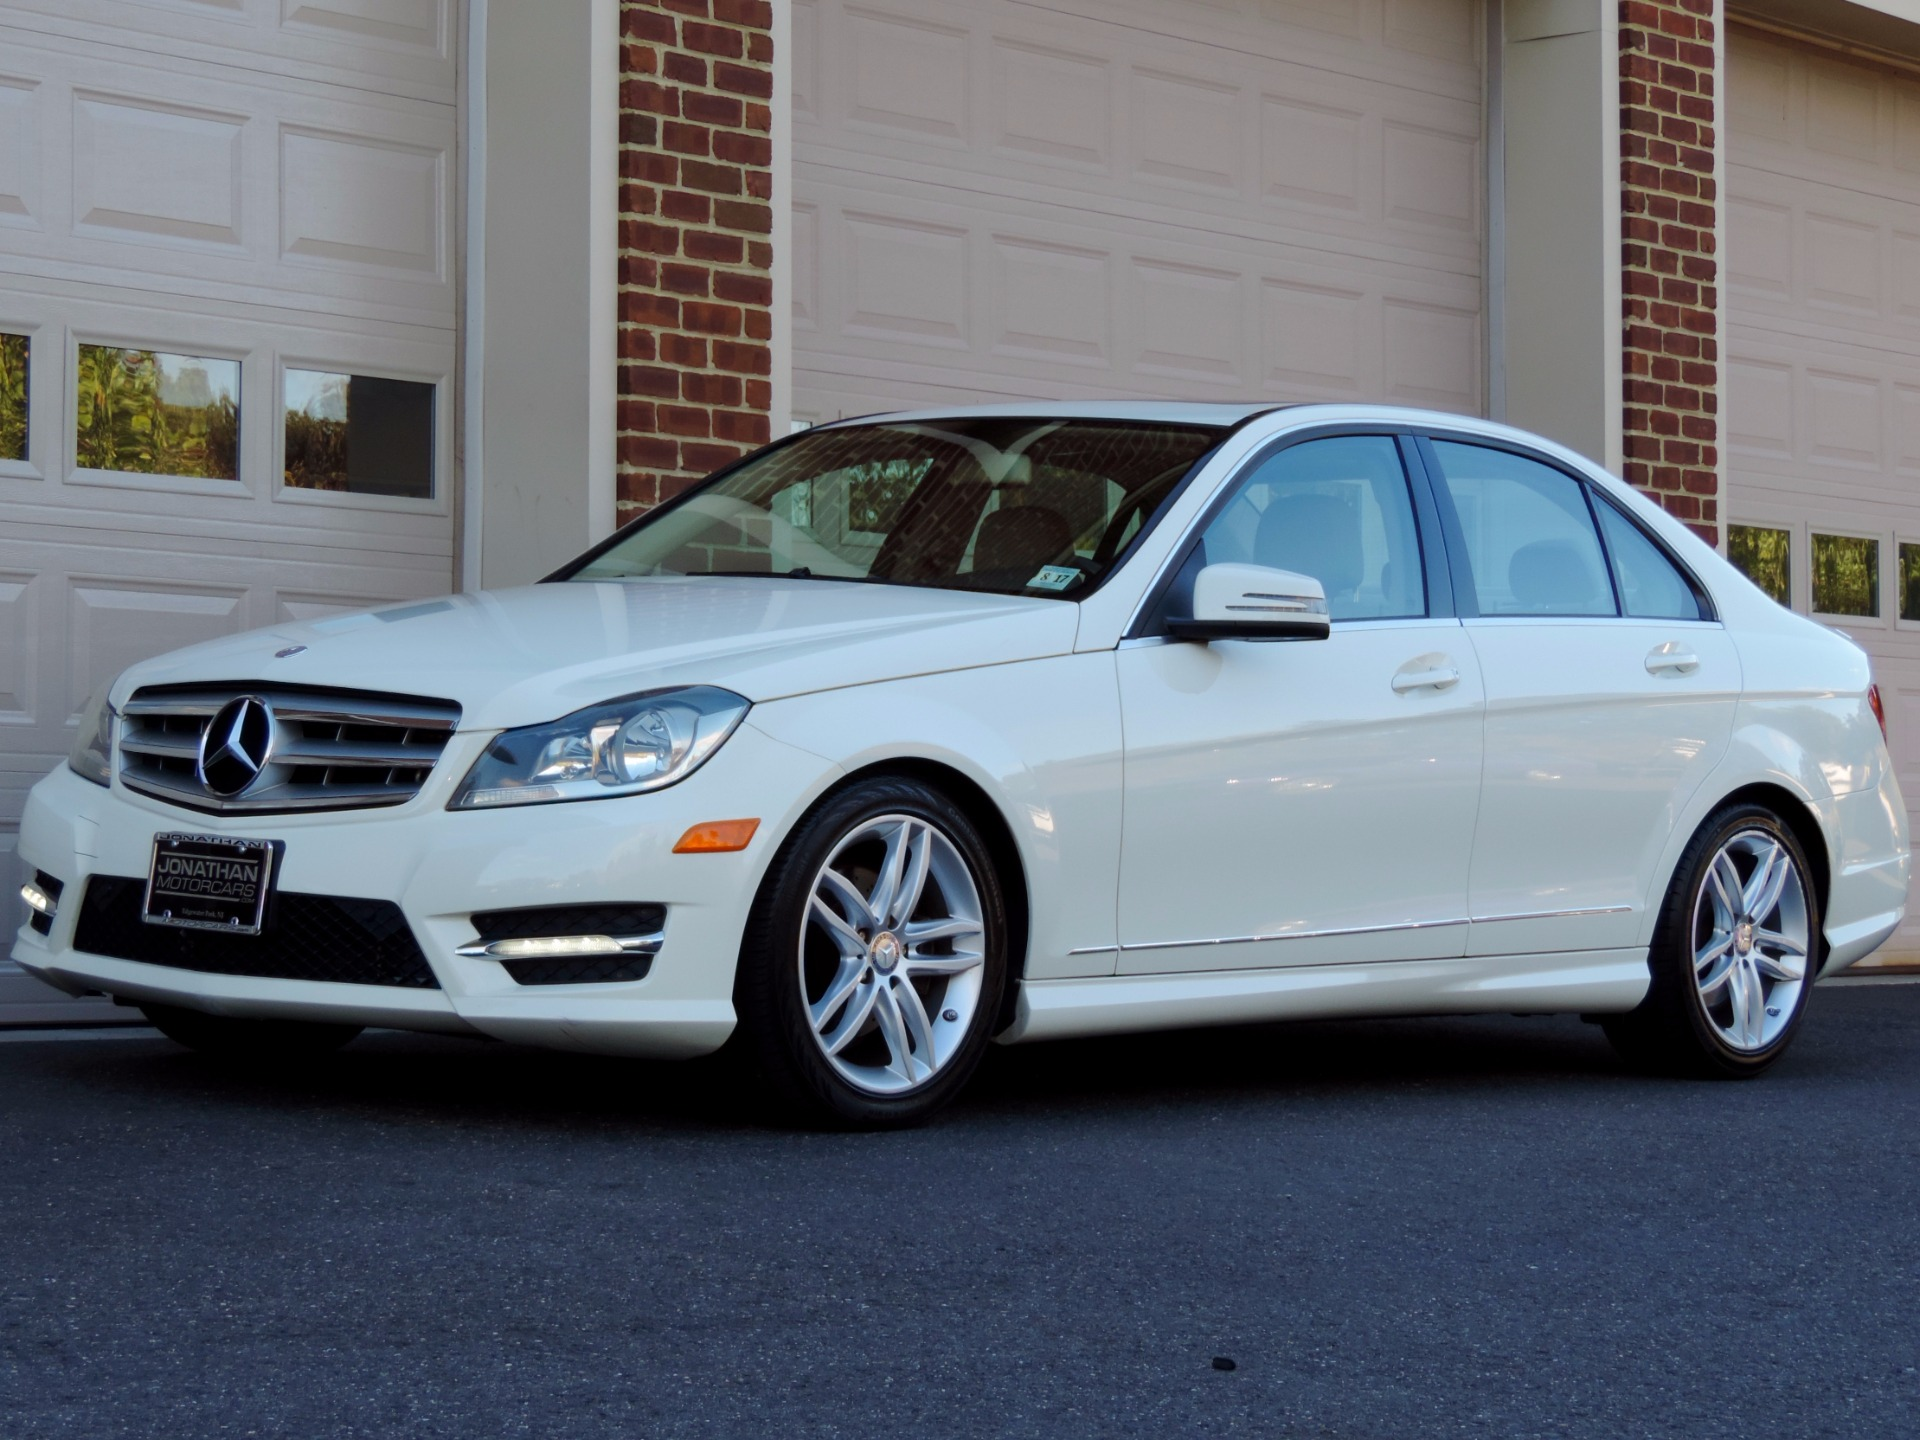 2012 mercedes benz c class c 300 sport 4matic stock 201492 for sale near edgewater park nj. Black Bedroom Furniture Sets. Home Design Ideas